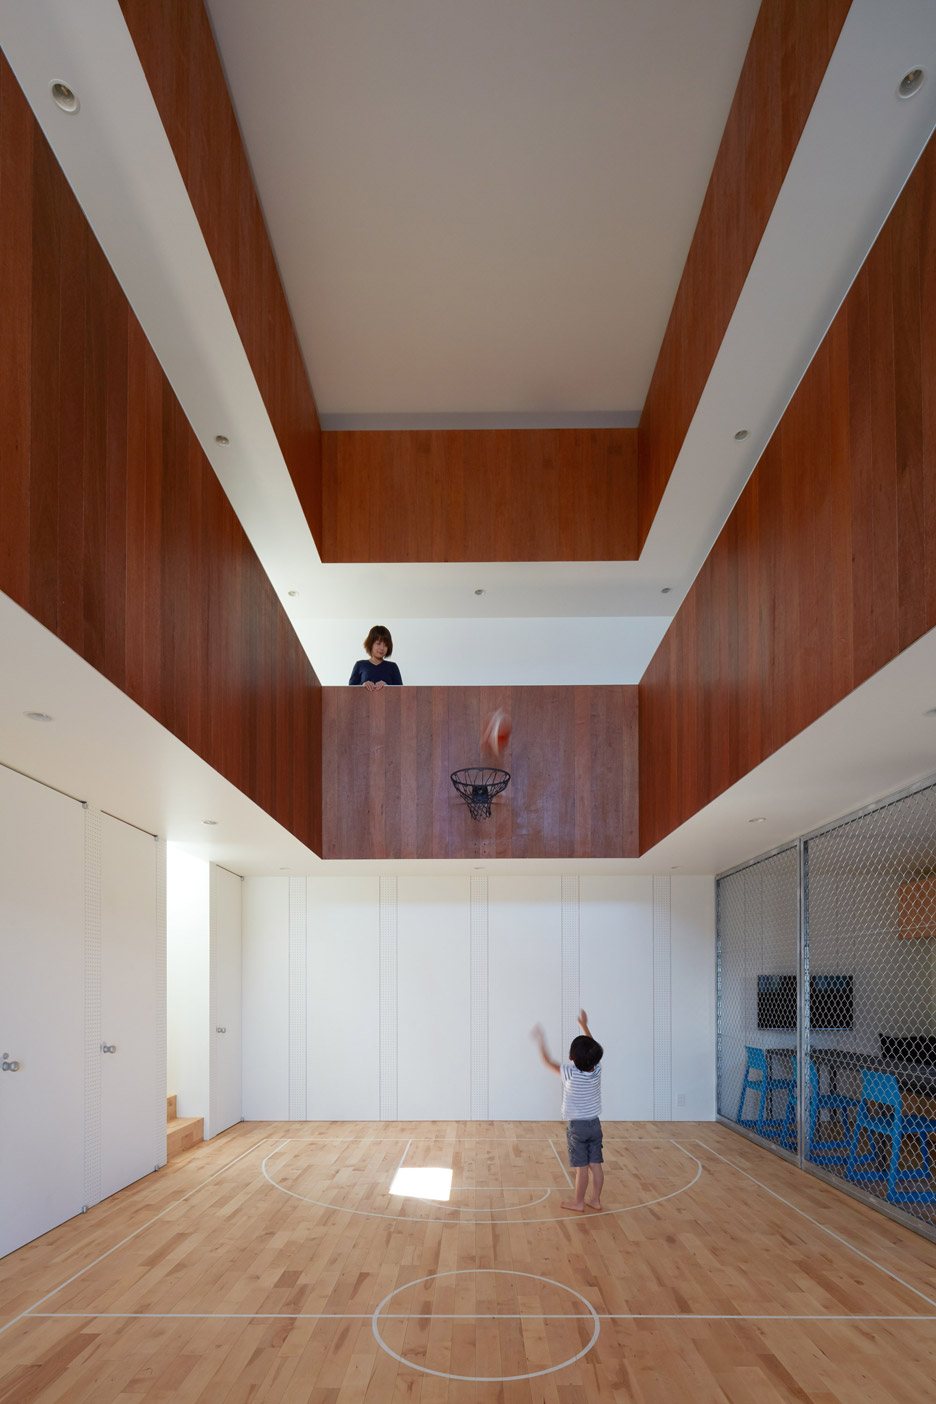 A house in japan has an indoor basketball court your no for House with indoor basketball court